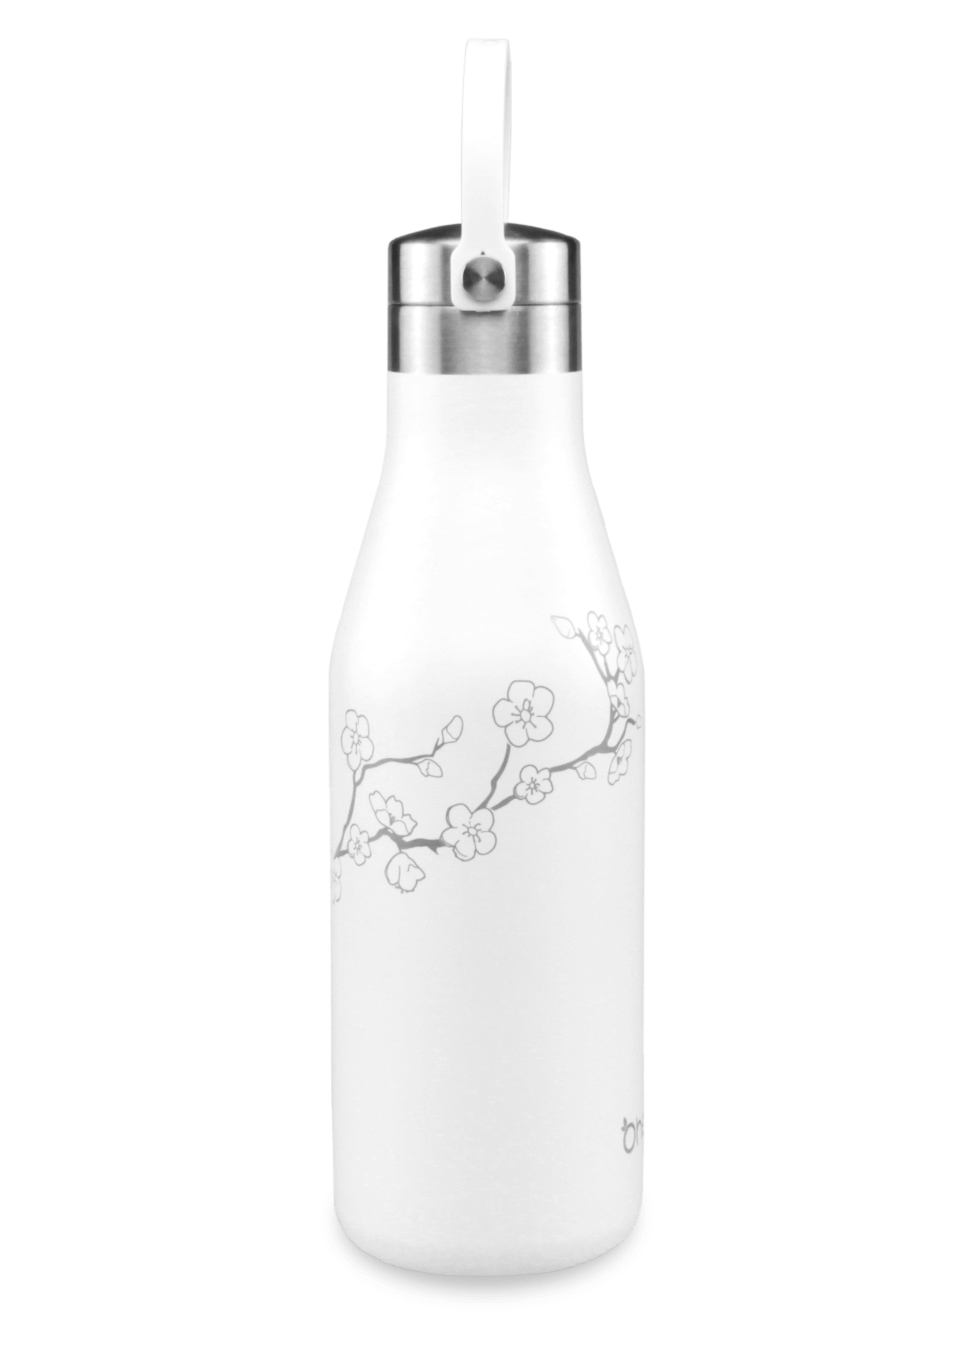 500ml white reusable bottle with carry strap and laser etched cherry blossom